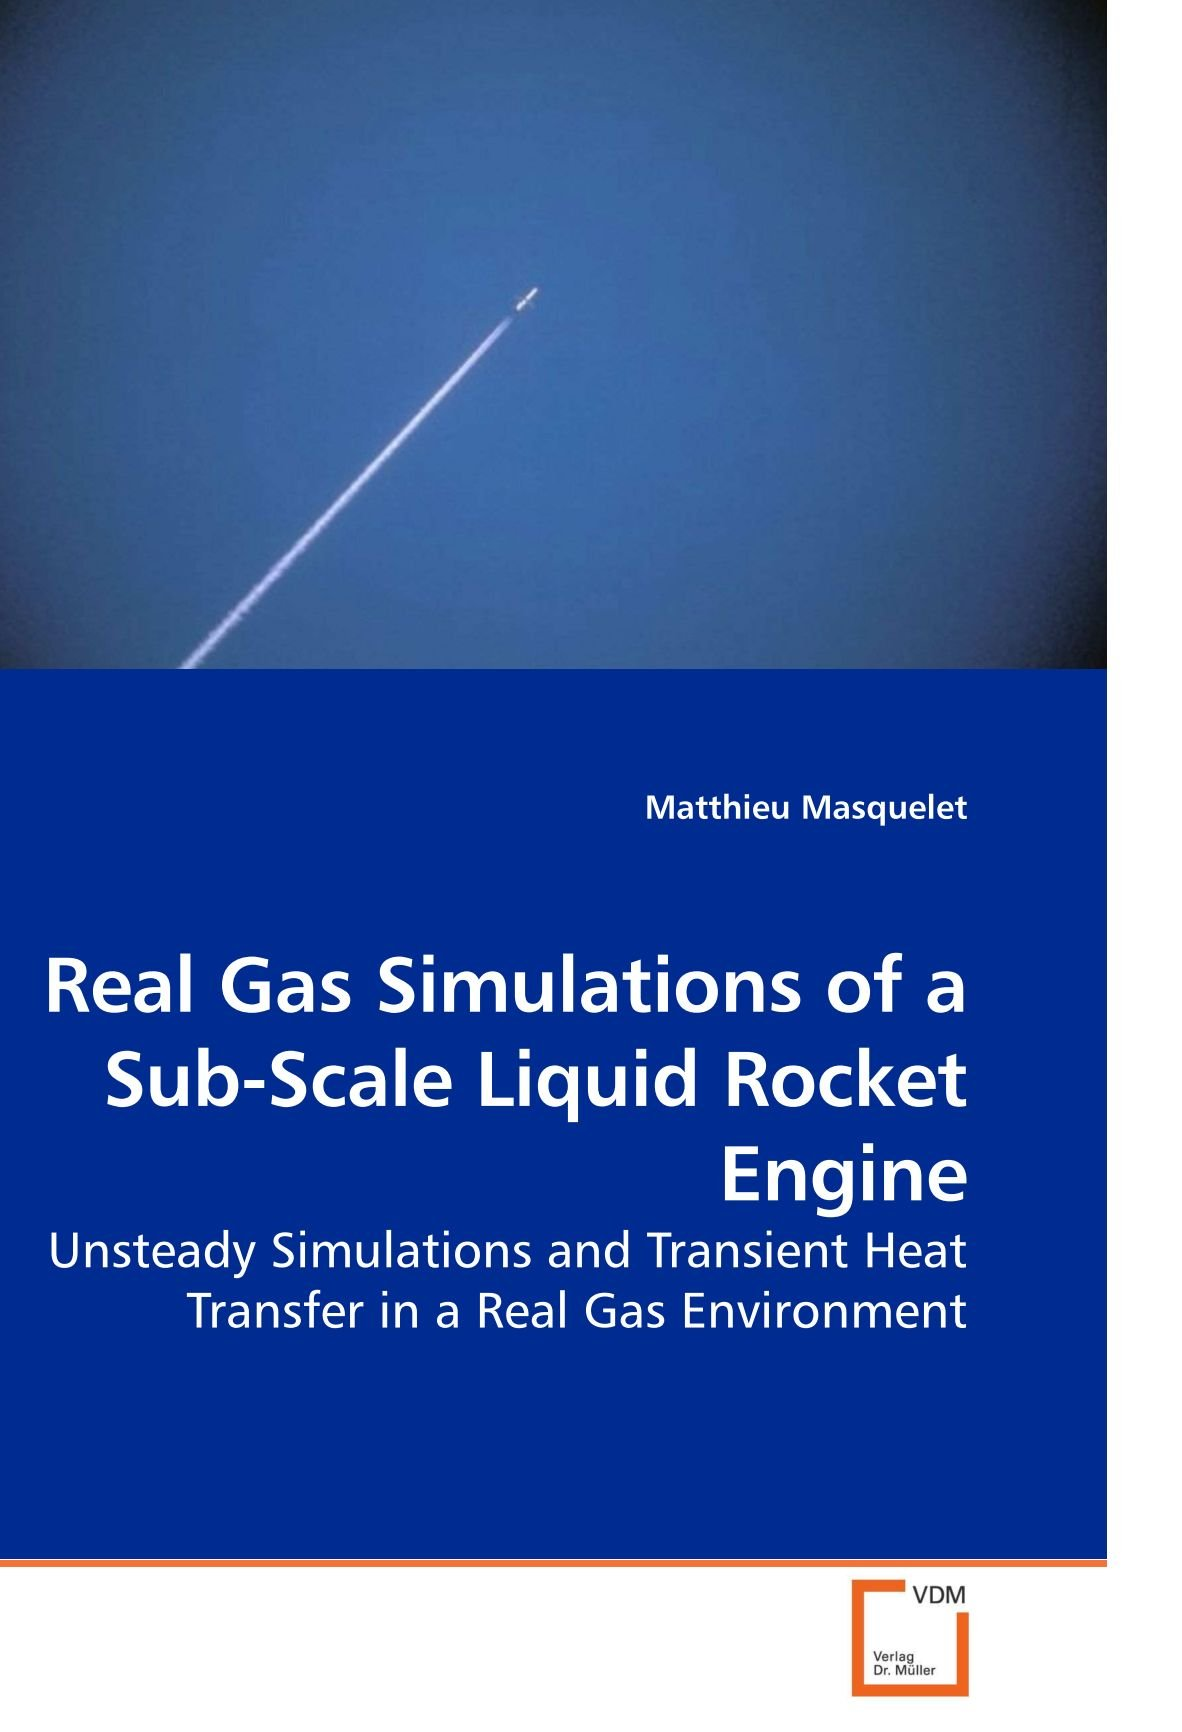 Real Gas Simulations of a Sub-Scale Liquid Rocket Engine: Unsteady Simulations and Transient Heat Transfer in a Real Gas Environment